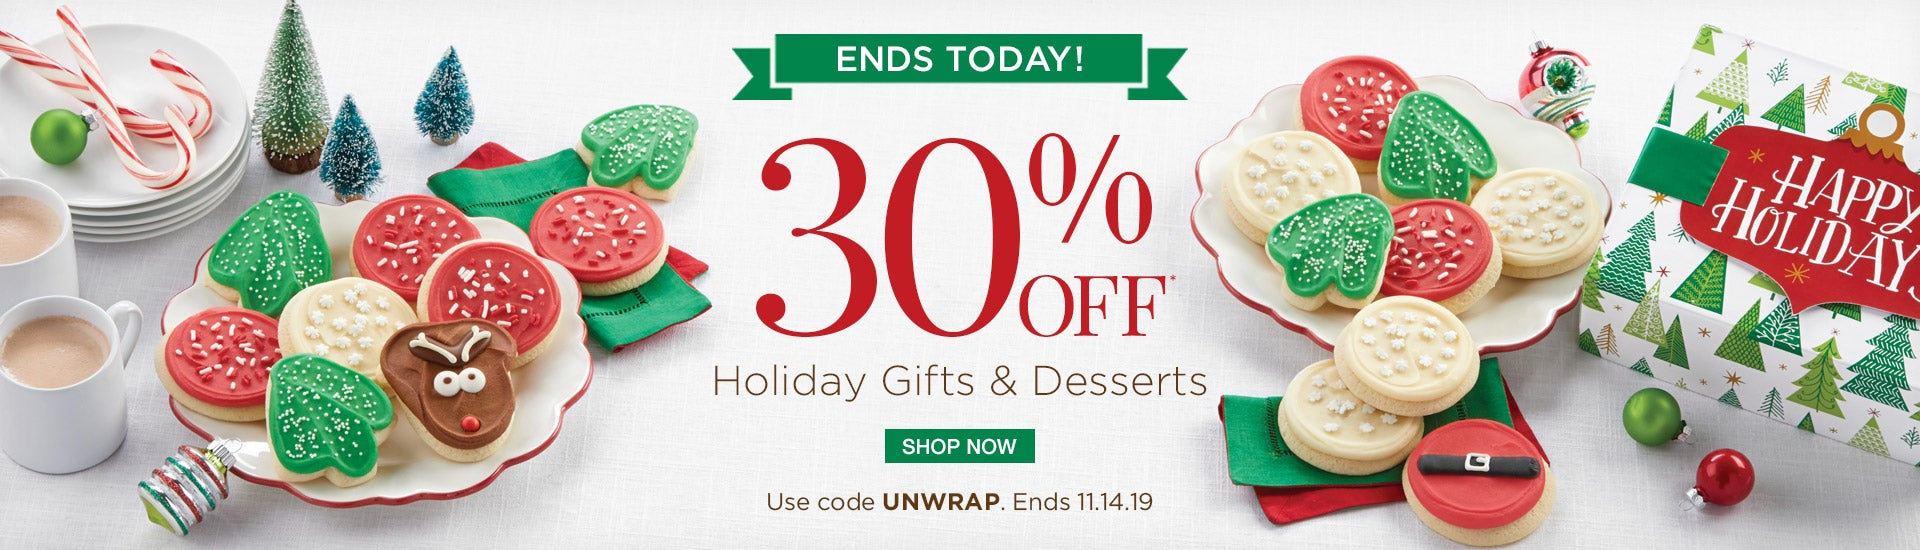 30% off Holiday Gifts